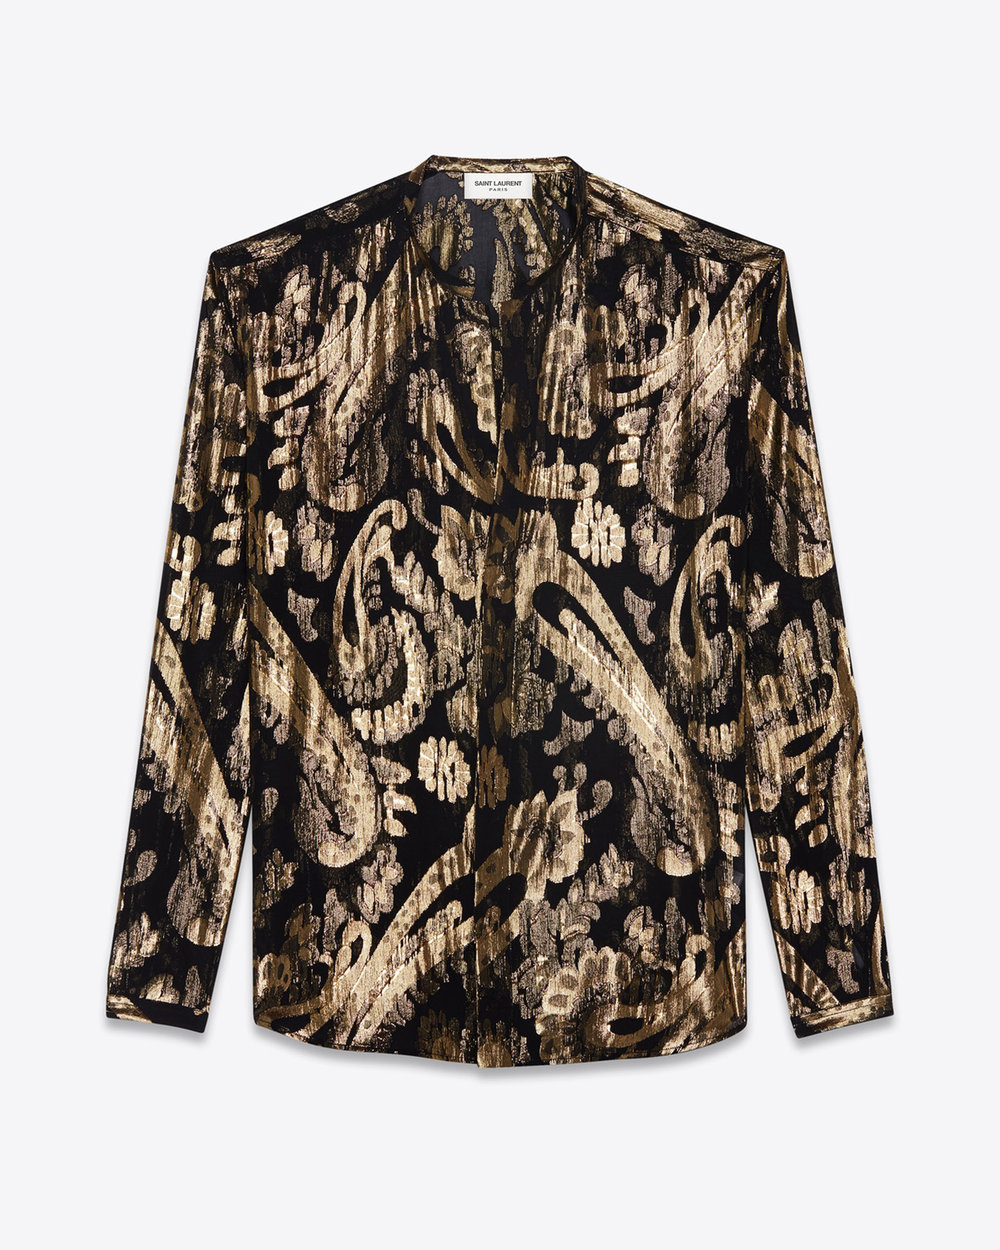 Saint Laurent Tunisian Collar Shirt In Black Silk With Gold Lamé Flowers